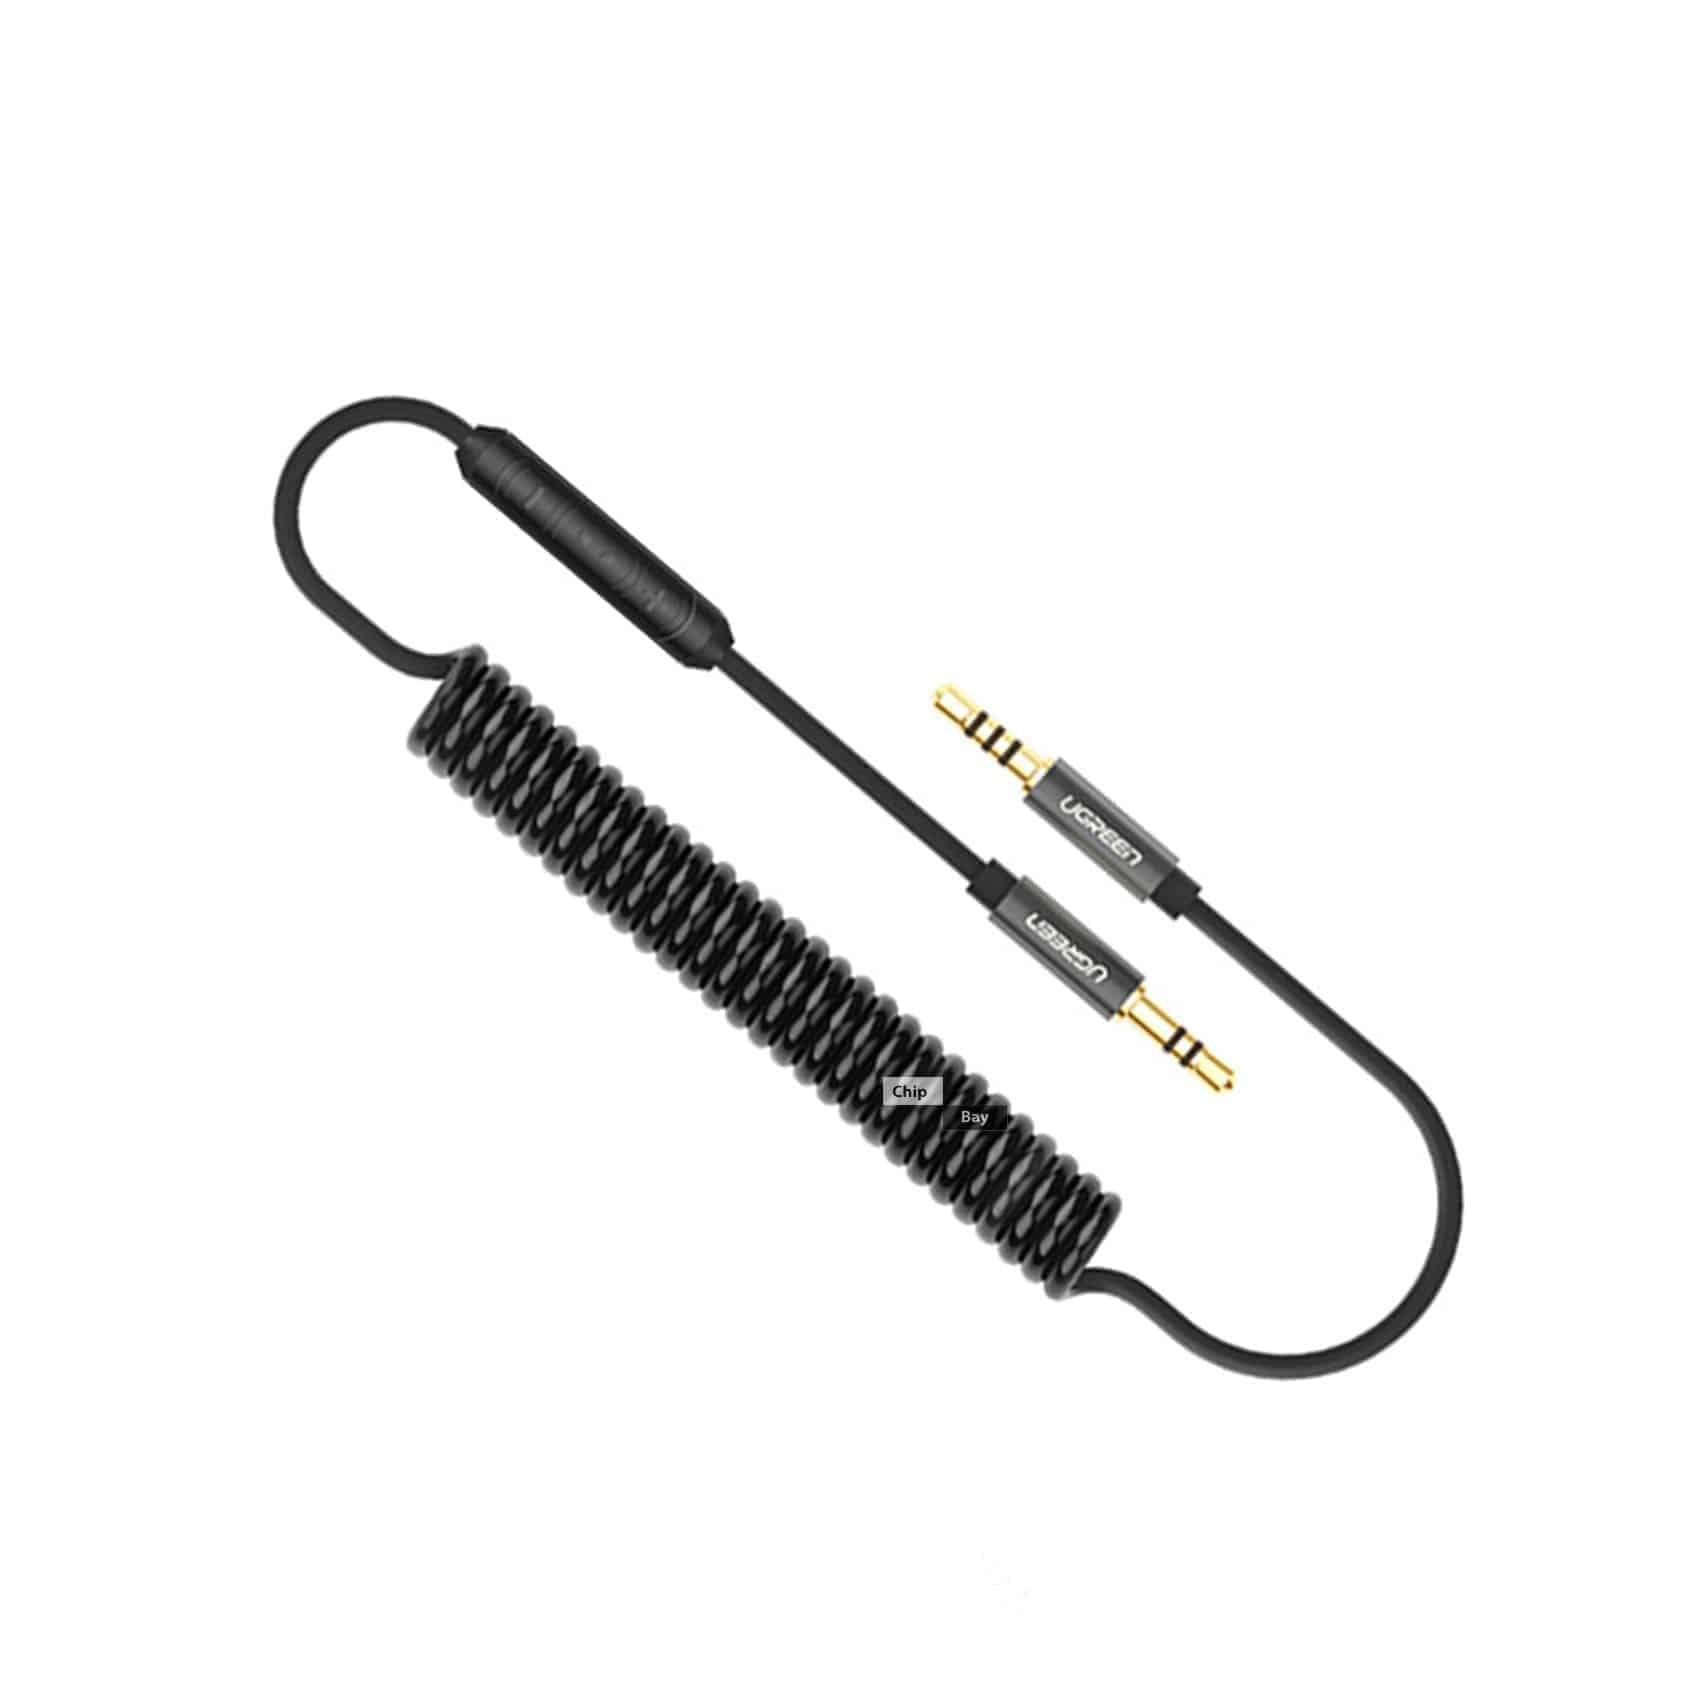 Ugreen Coiled Audio Cable Jack 3 5mm Aux Cable With Without Button